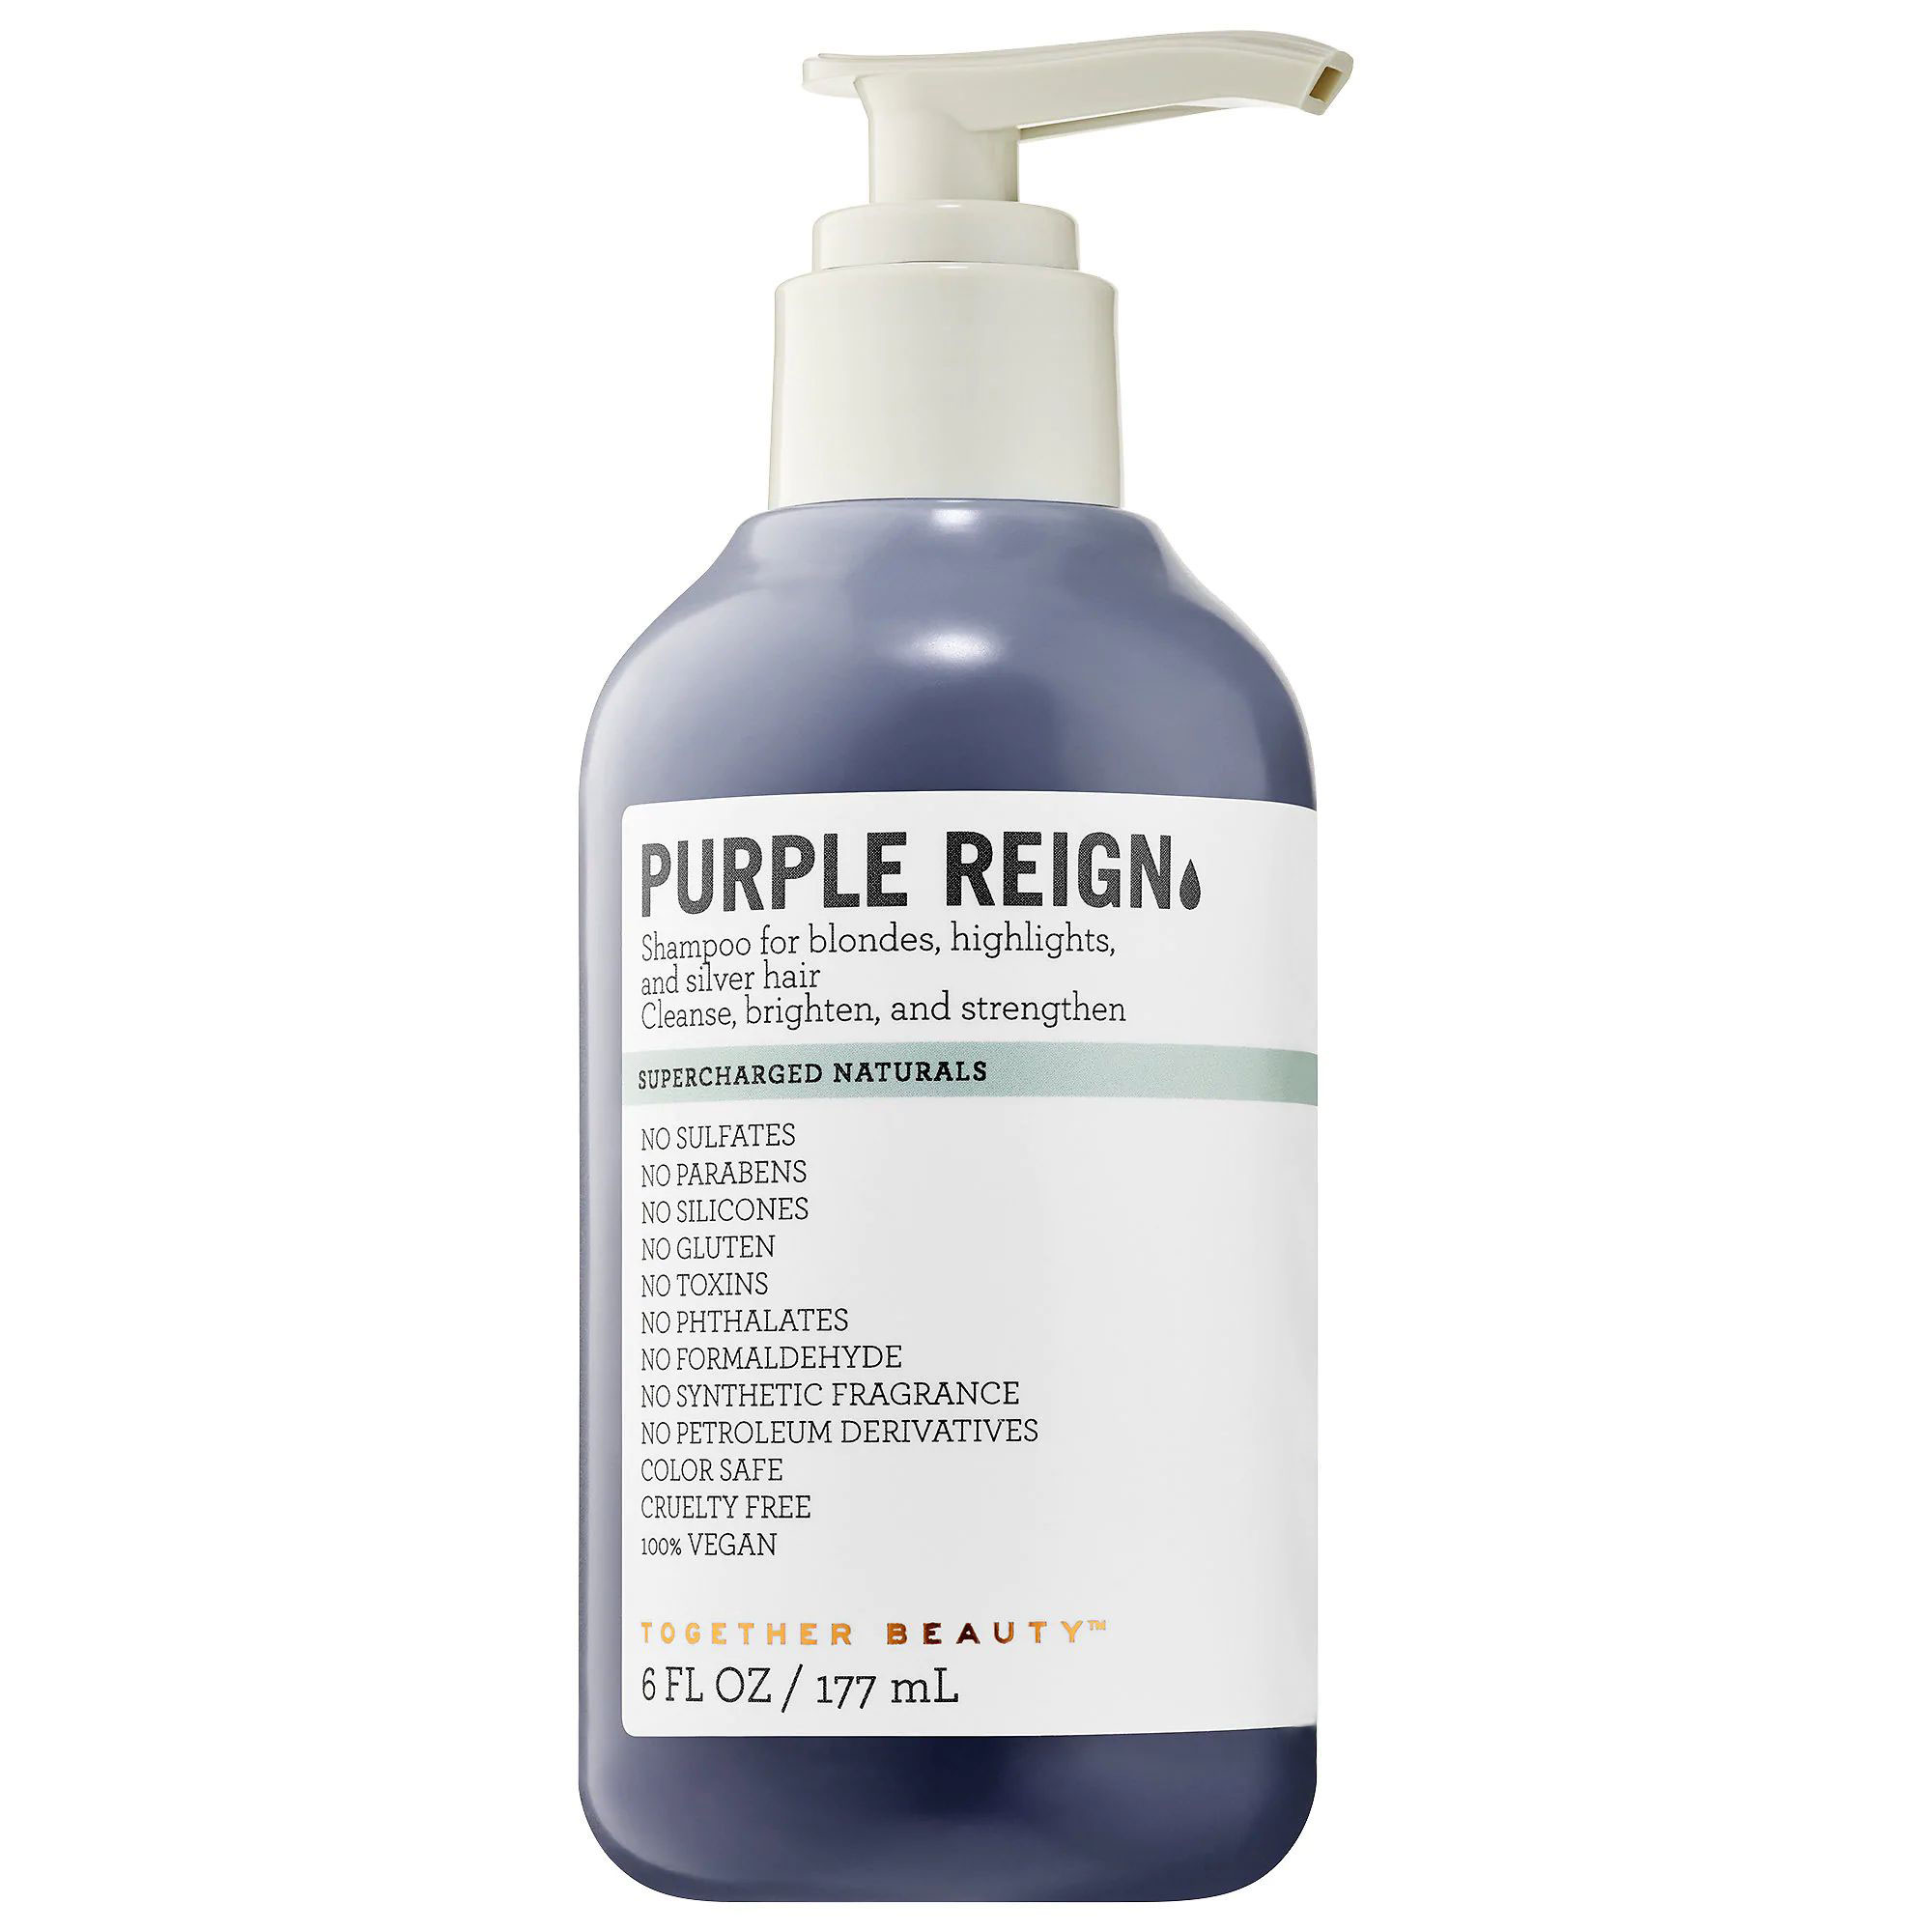 For Blonde Hair: Together Beauty Purple Reign Shampoo